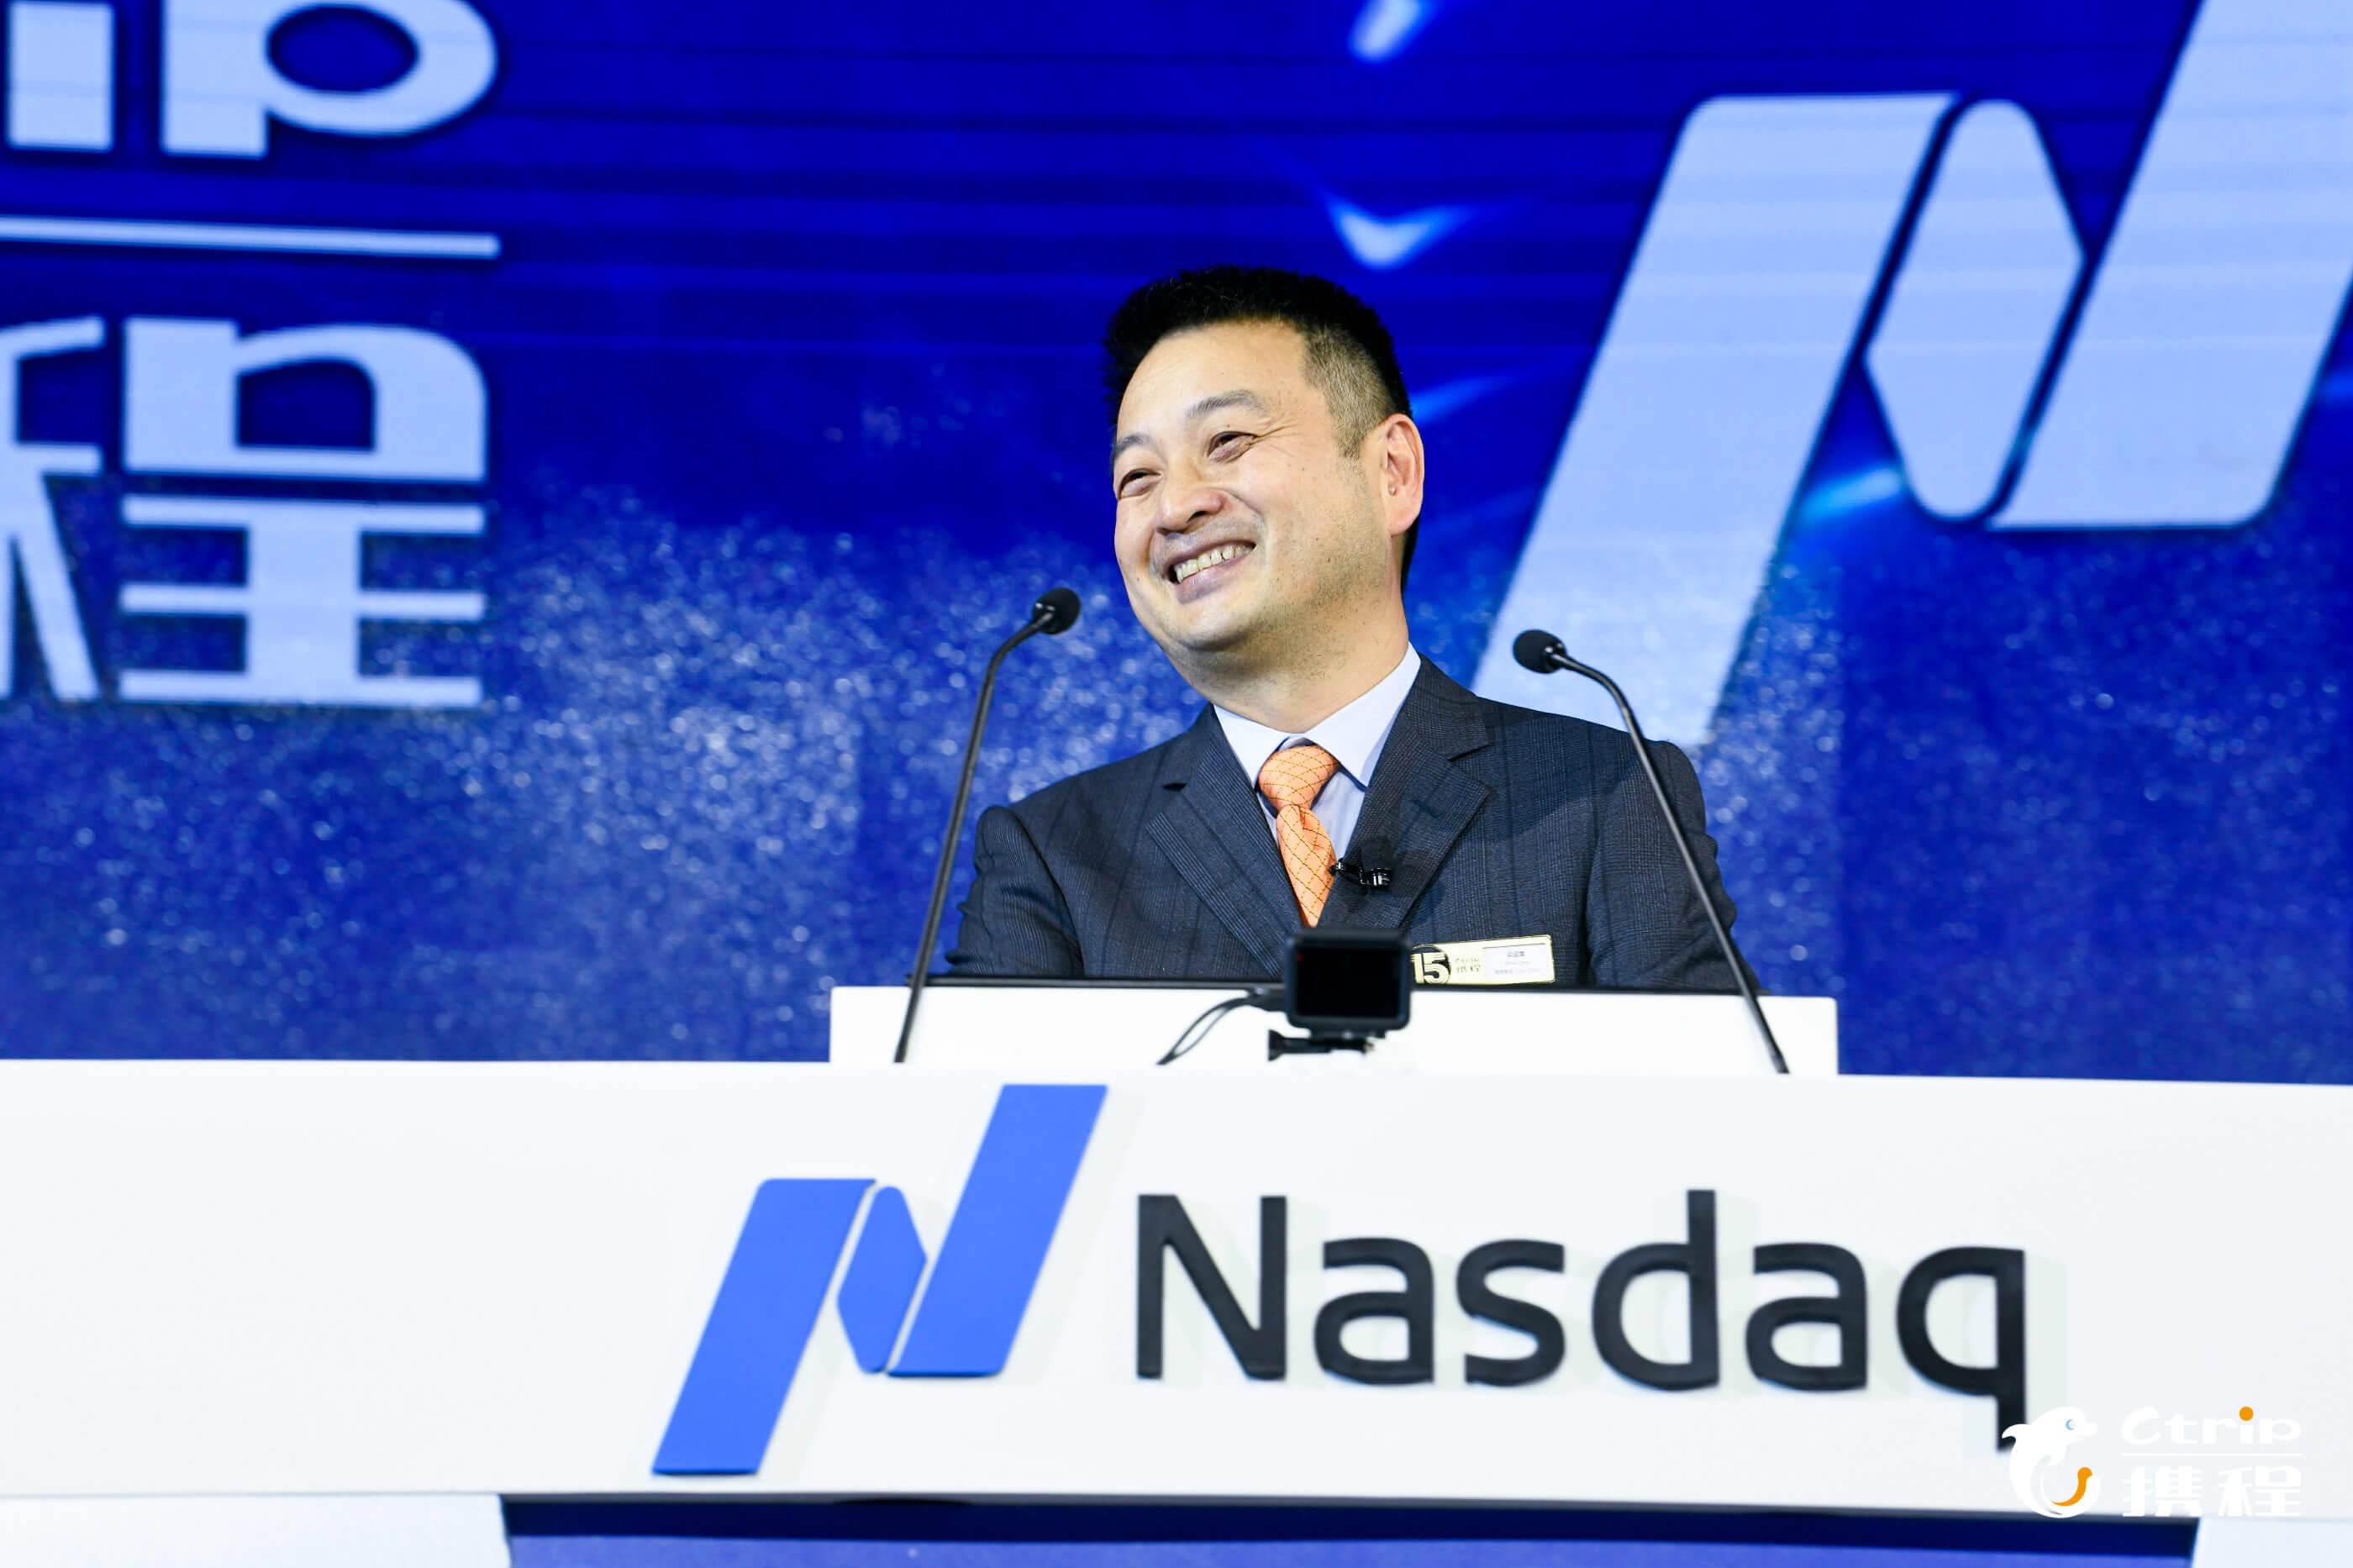 Trip.com chairman James Liang at a conference. Source: Ctrip.com